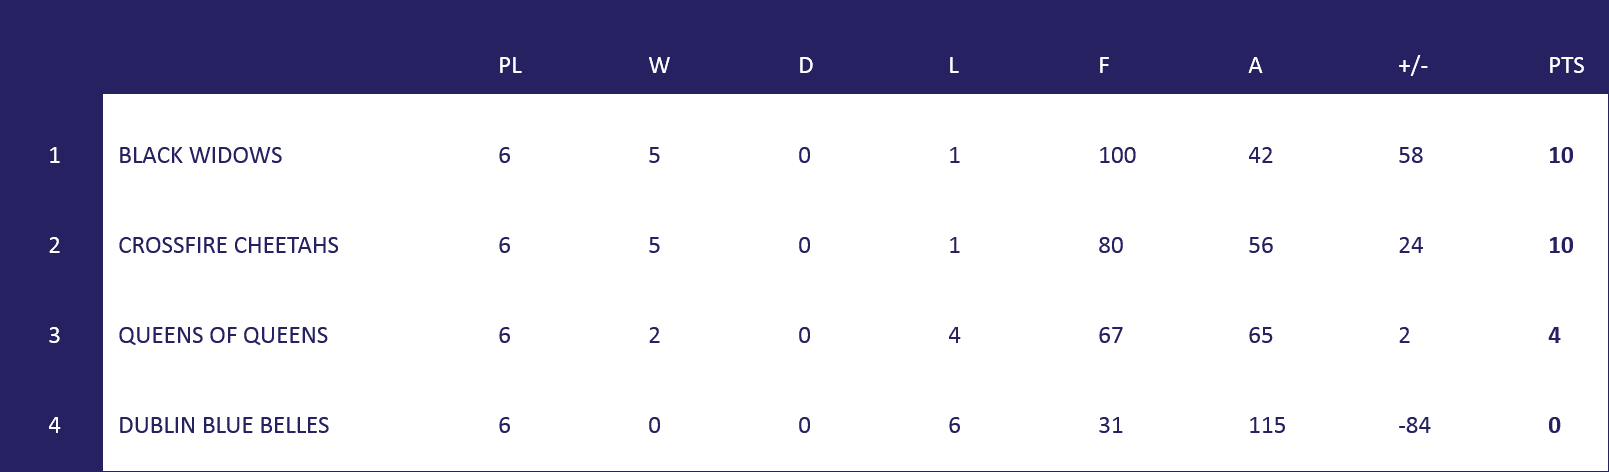 ni wsl table